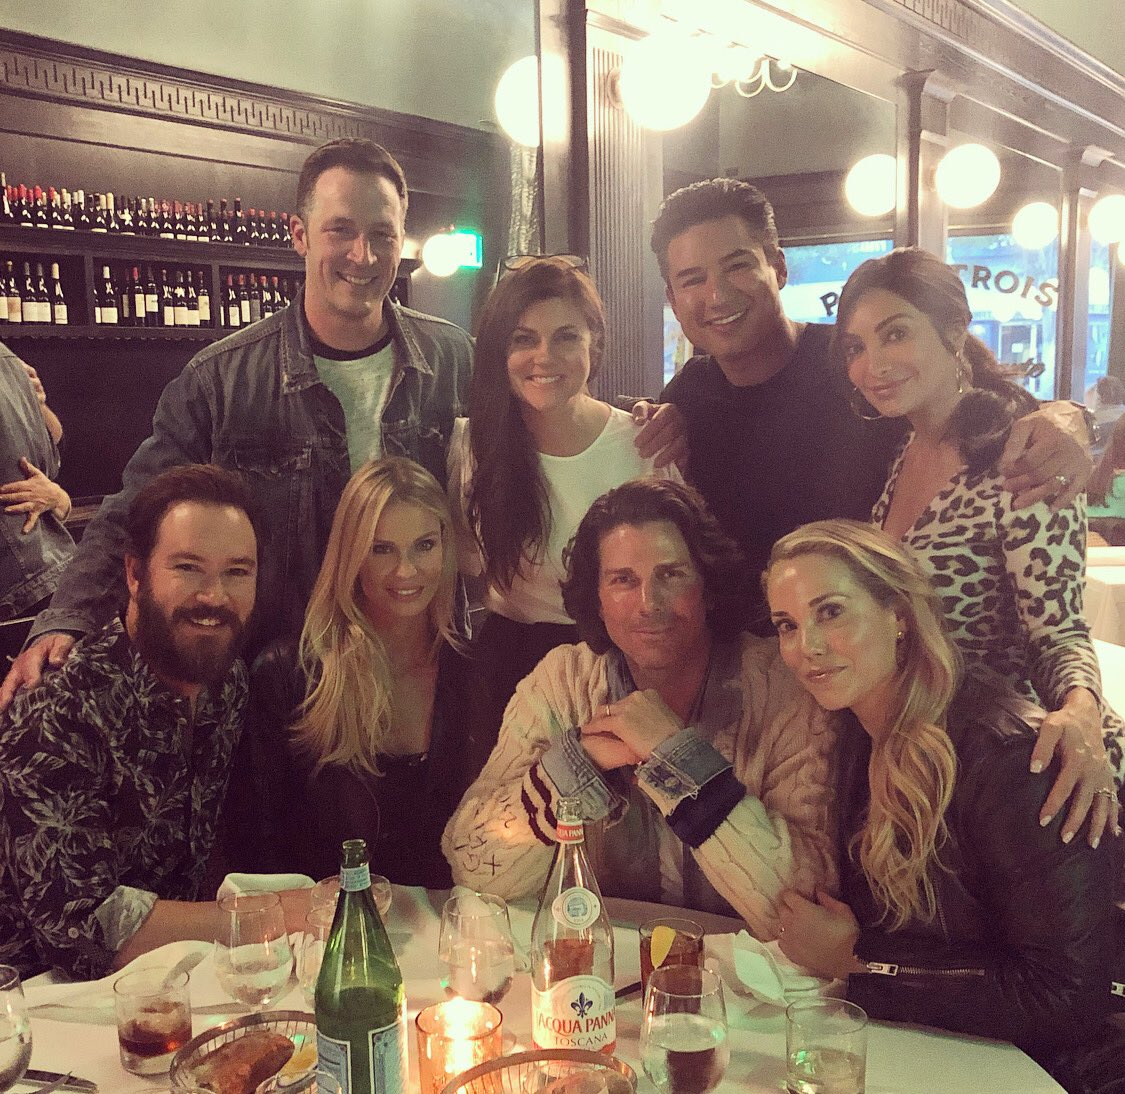 test Twitter Media - RT @MPG: This is what 30+ years of friendship looks like... https://t.co/RbbbcR7OvL